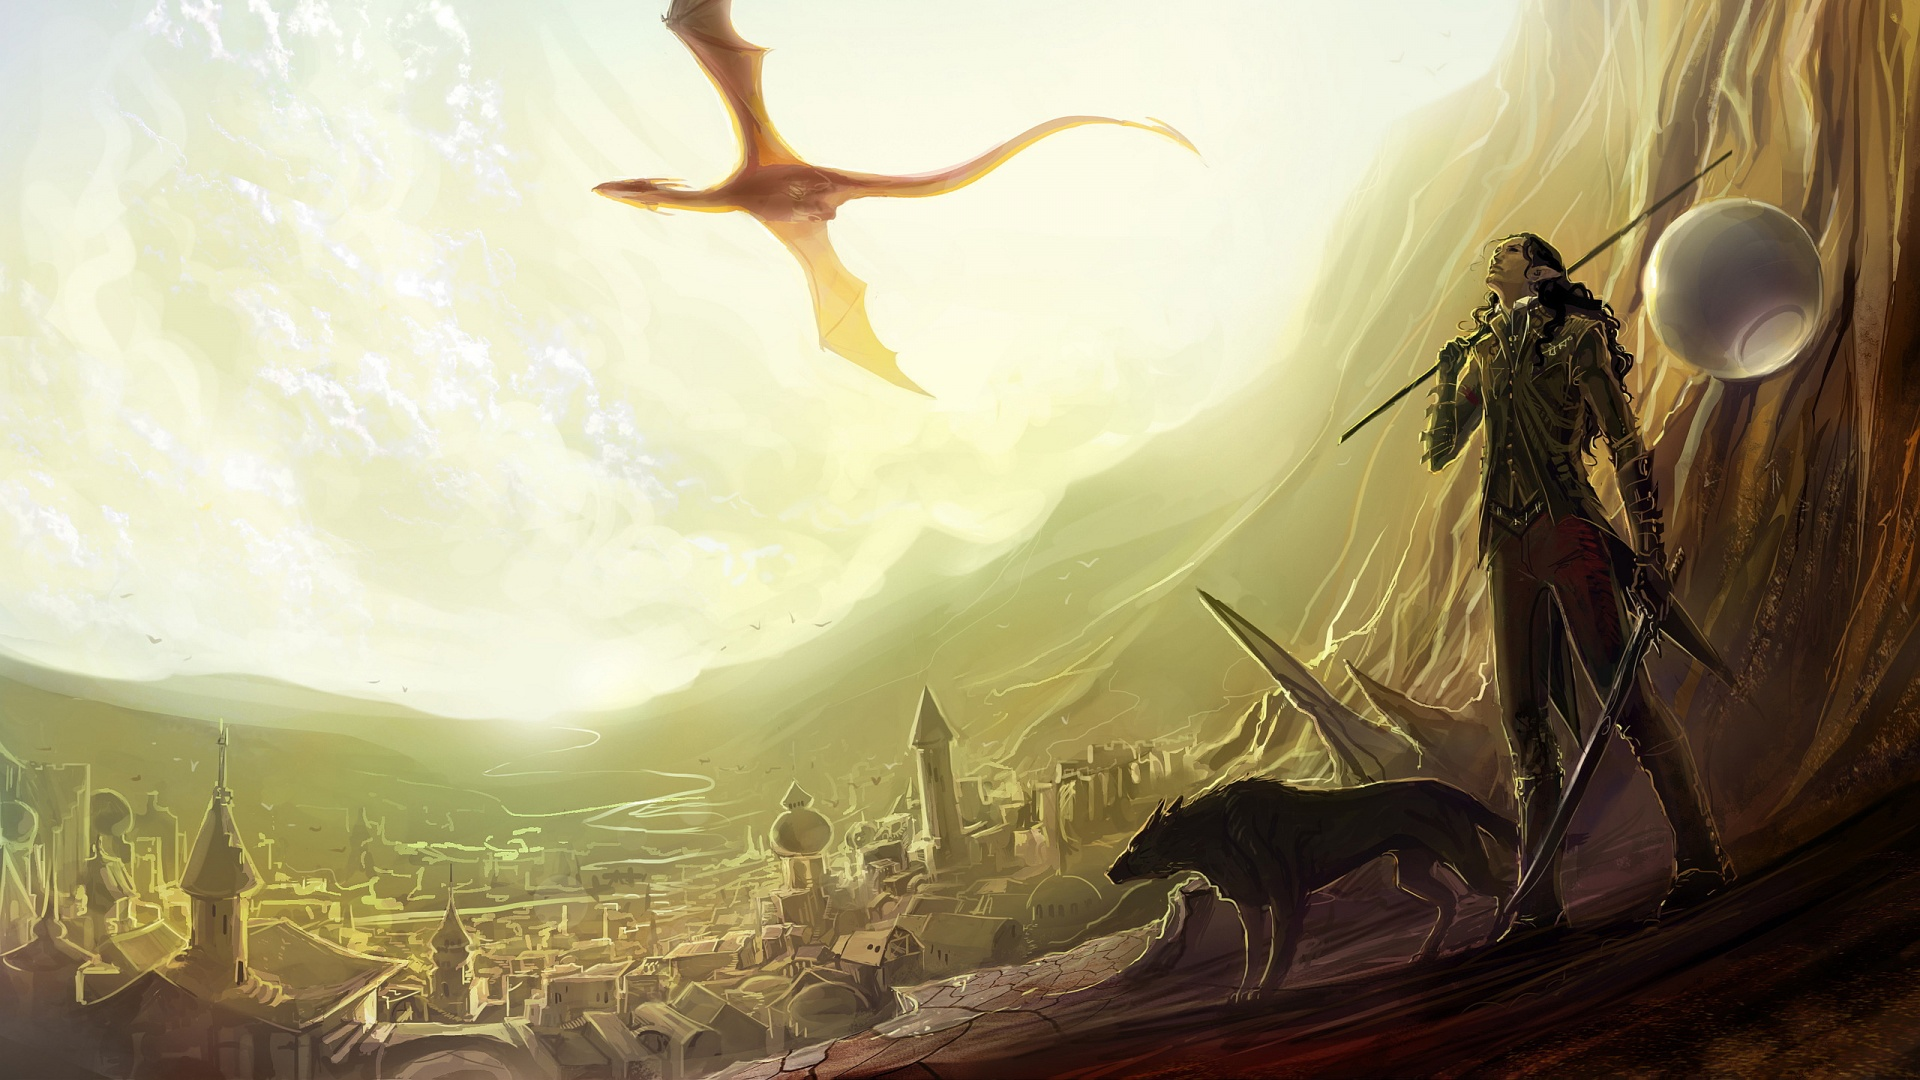 dragons landscapes cities women girl elf wolf wolves